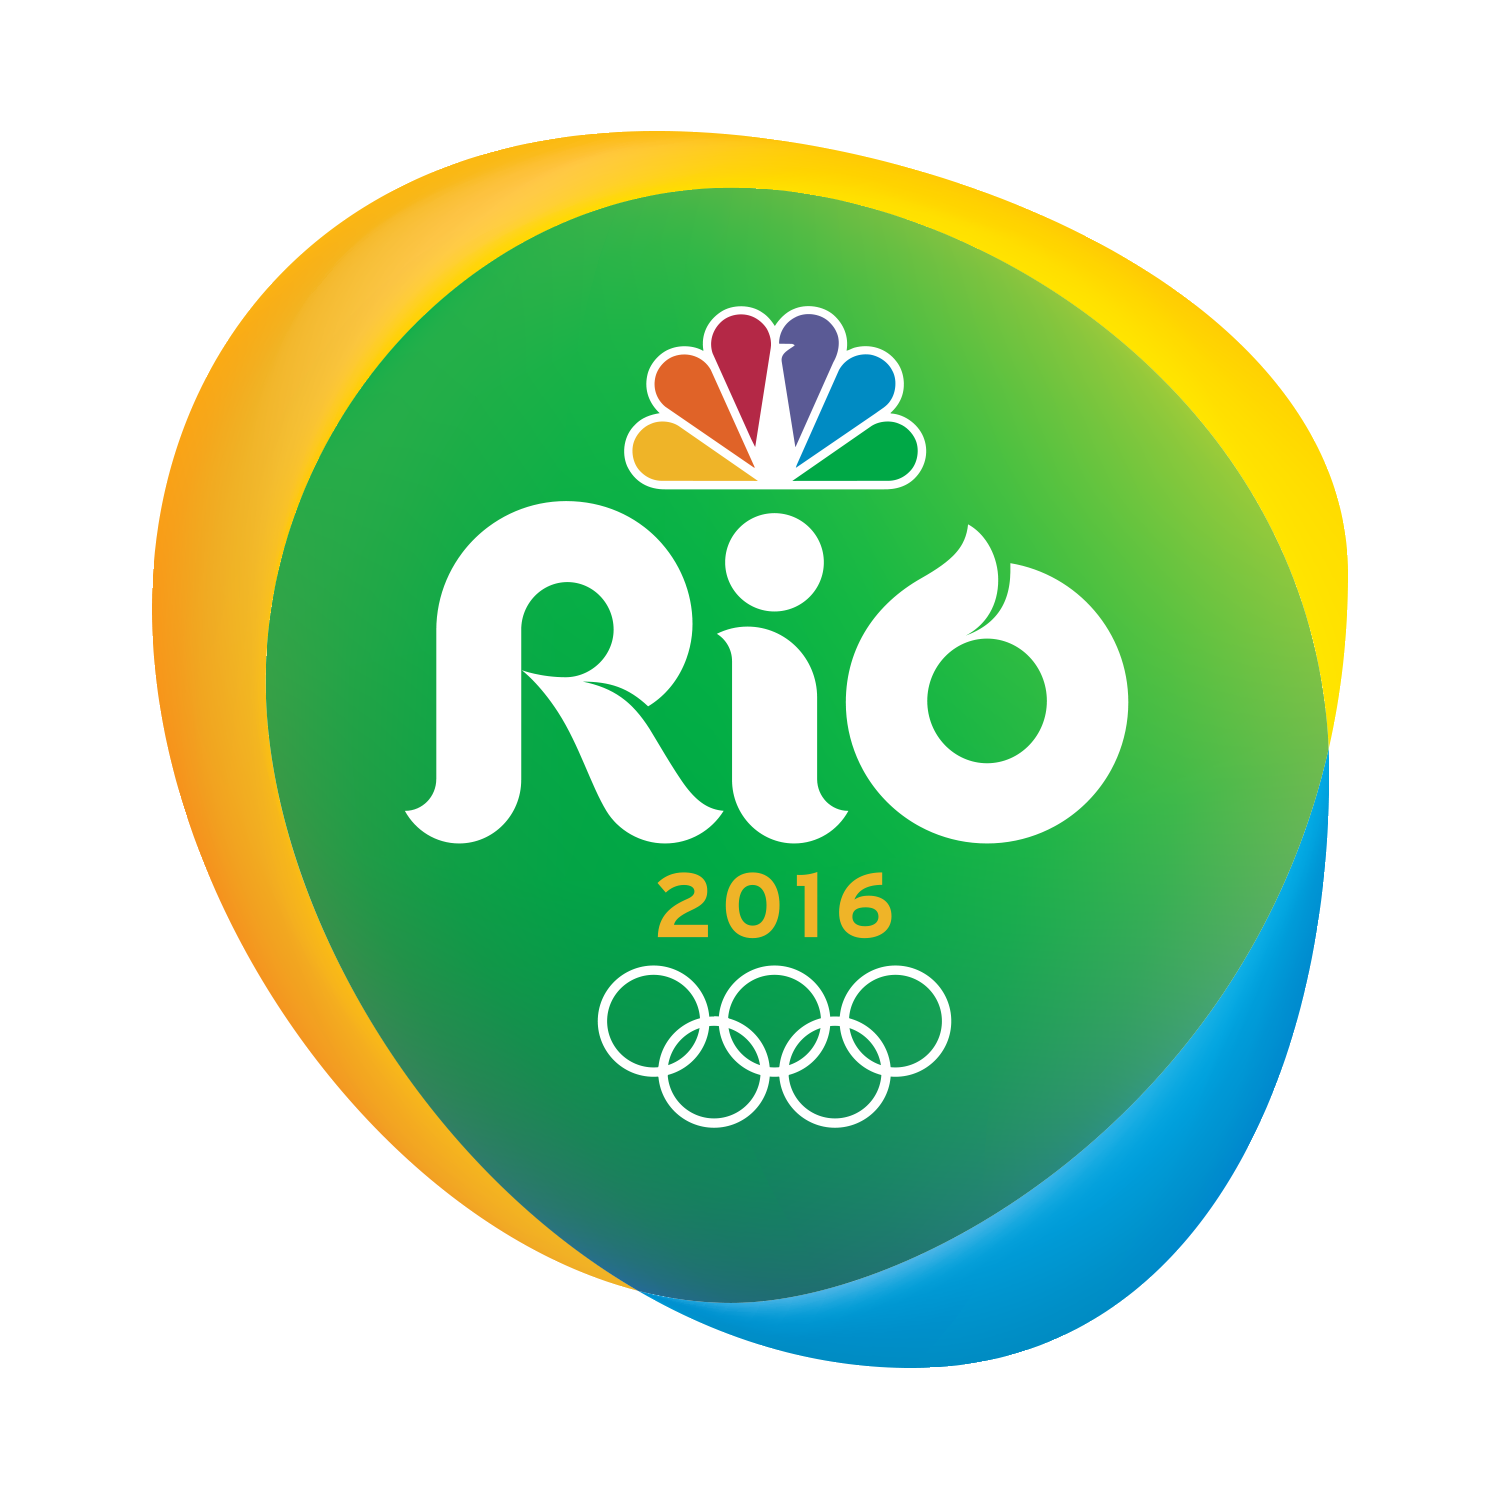 Rio 2016 logo png. Nbc olympics to provide